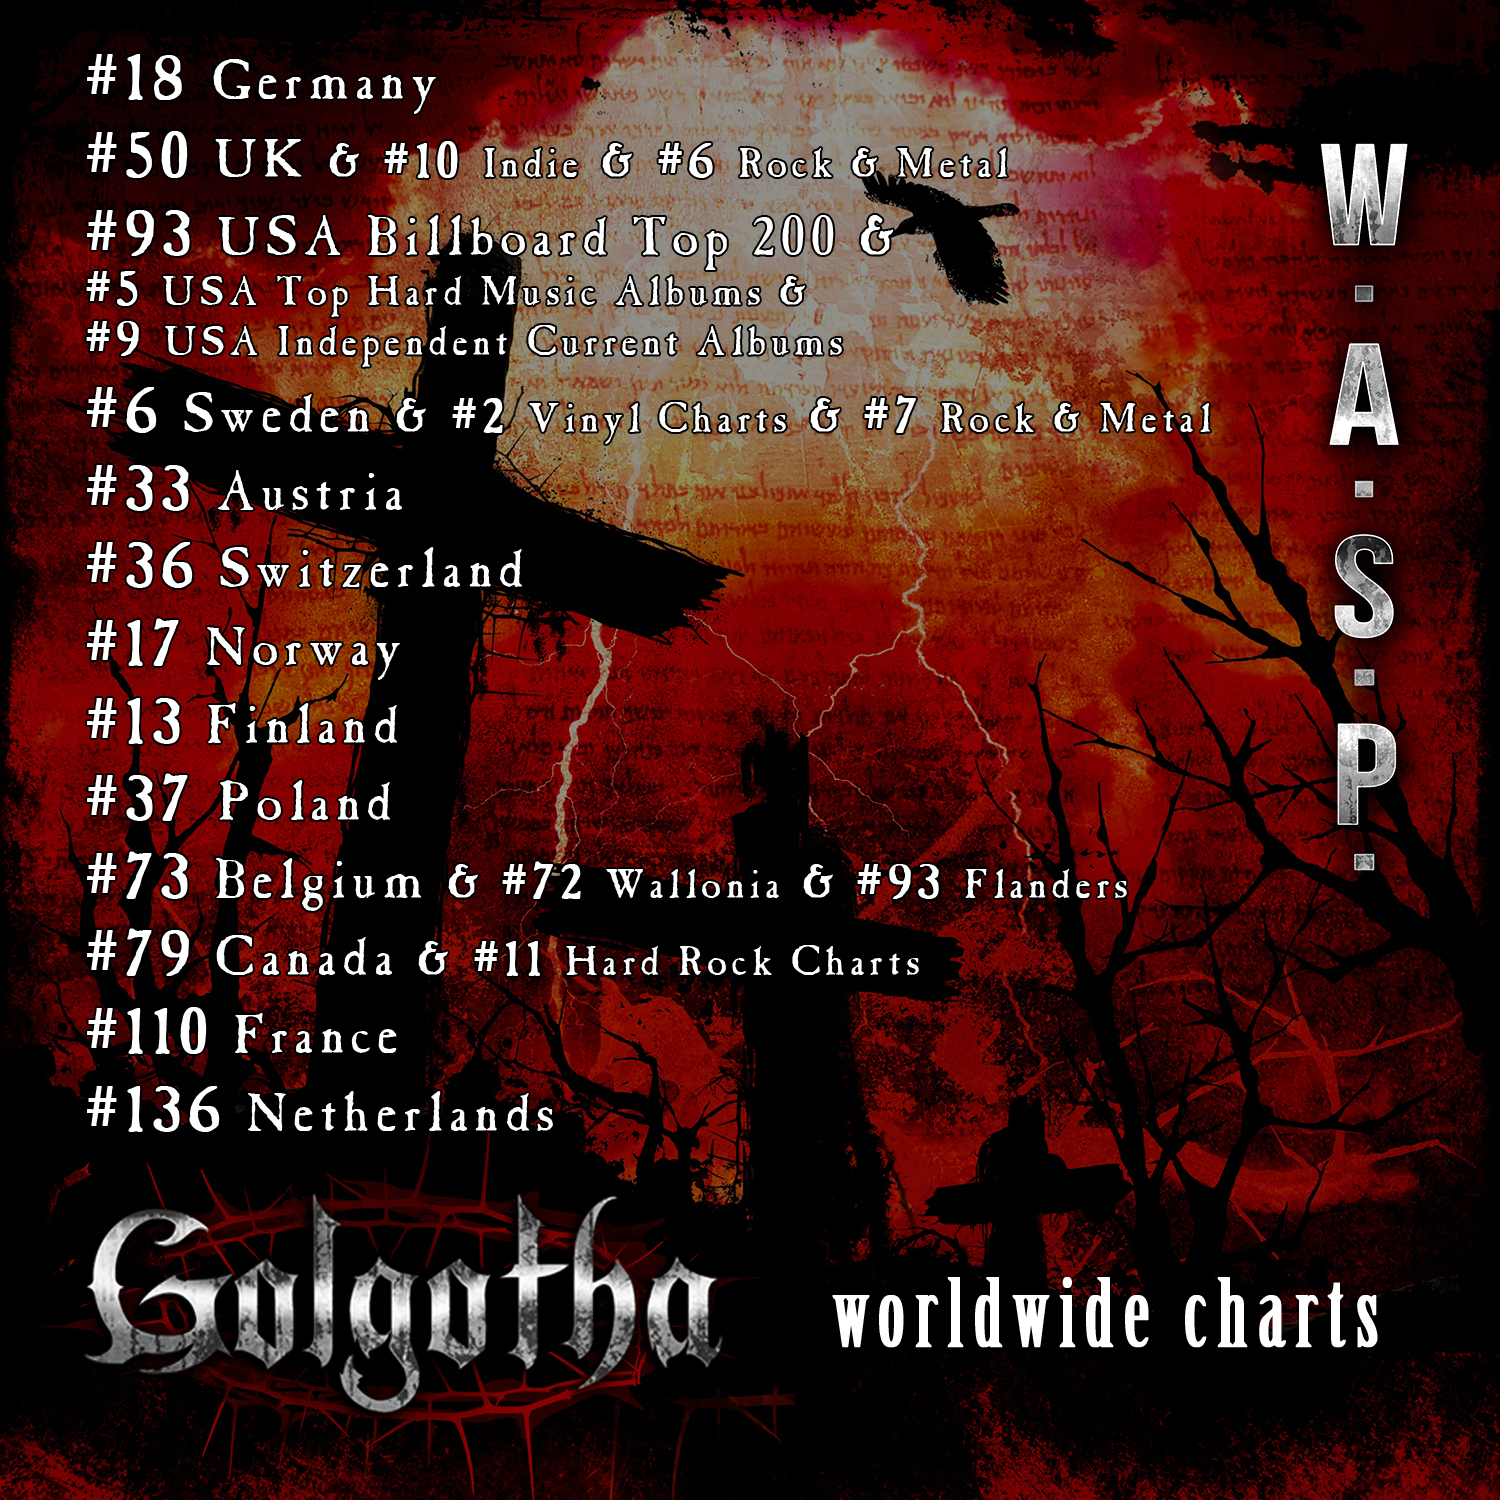 W A S P  - Hit The Charts Worldwide!